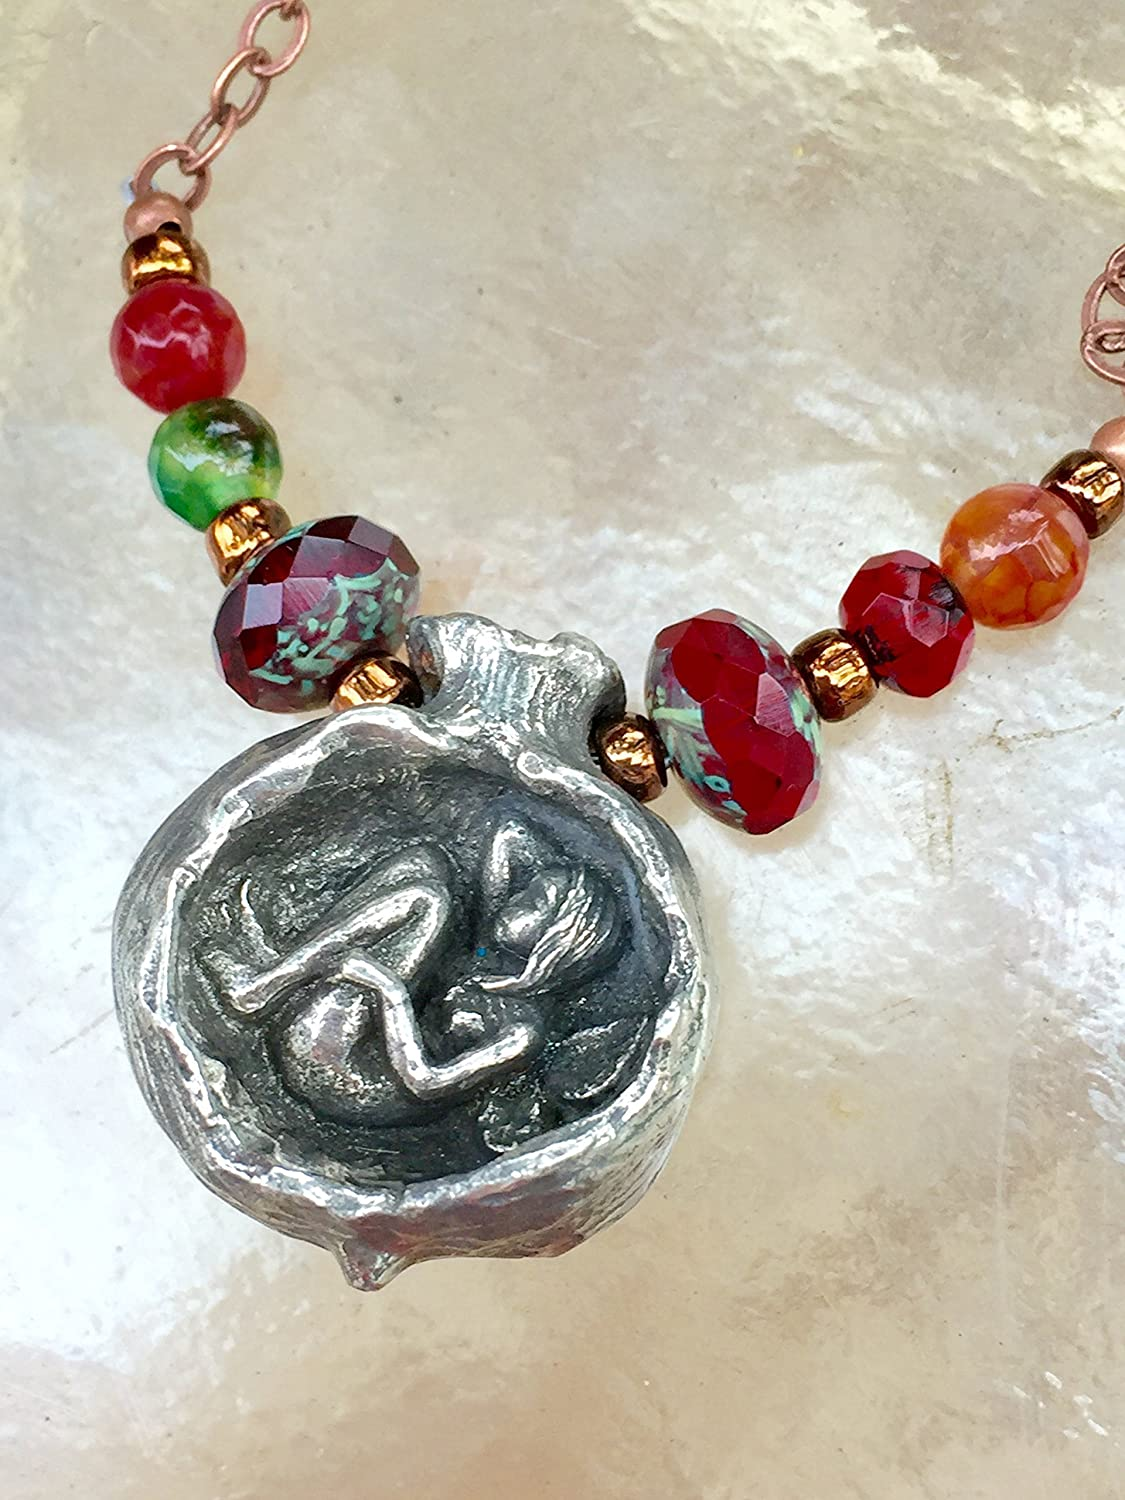 Pomegranate Fairy Necklace, Green Girl Pewter Pendant, Pomegranate Pendant, Fairy Necklace, Fairy Jewelry, Red Fairy Necklace, Rainbow Gems Fairy Necklace, Matching Earrings